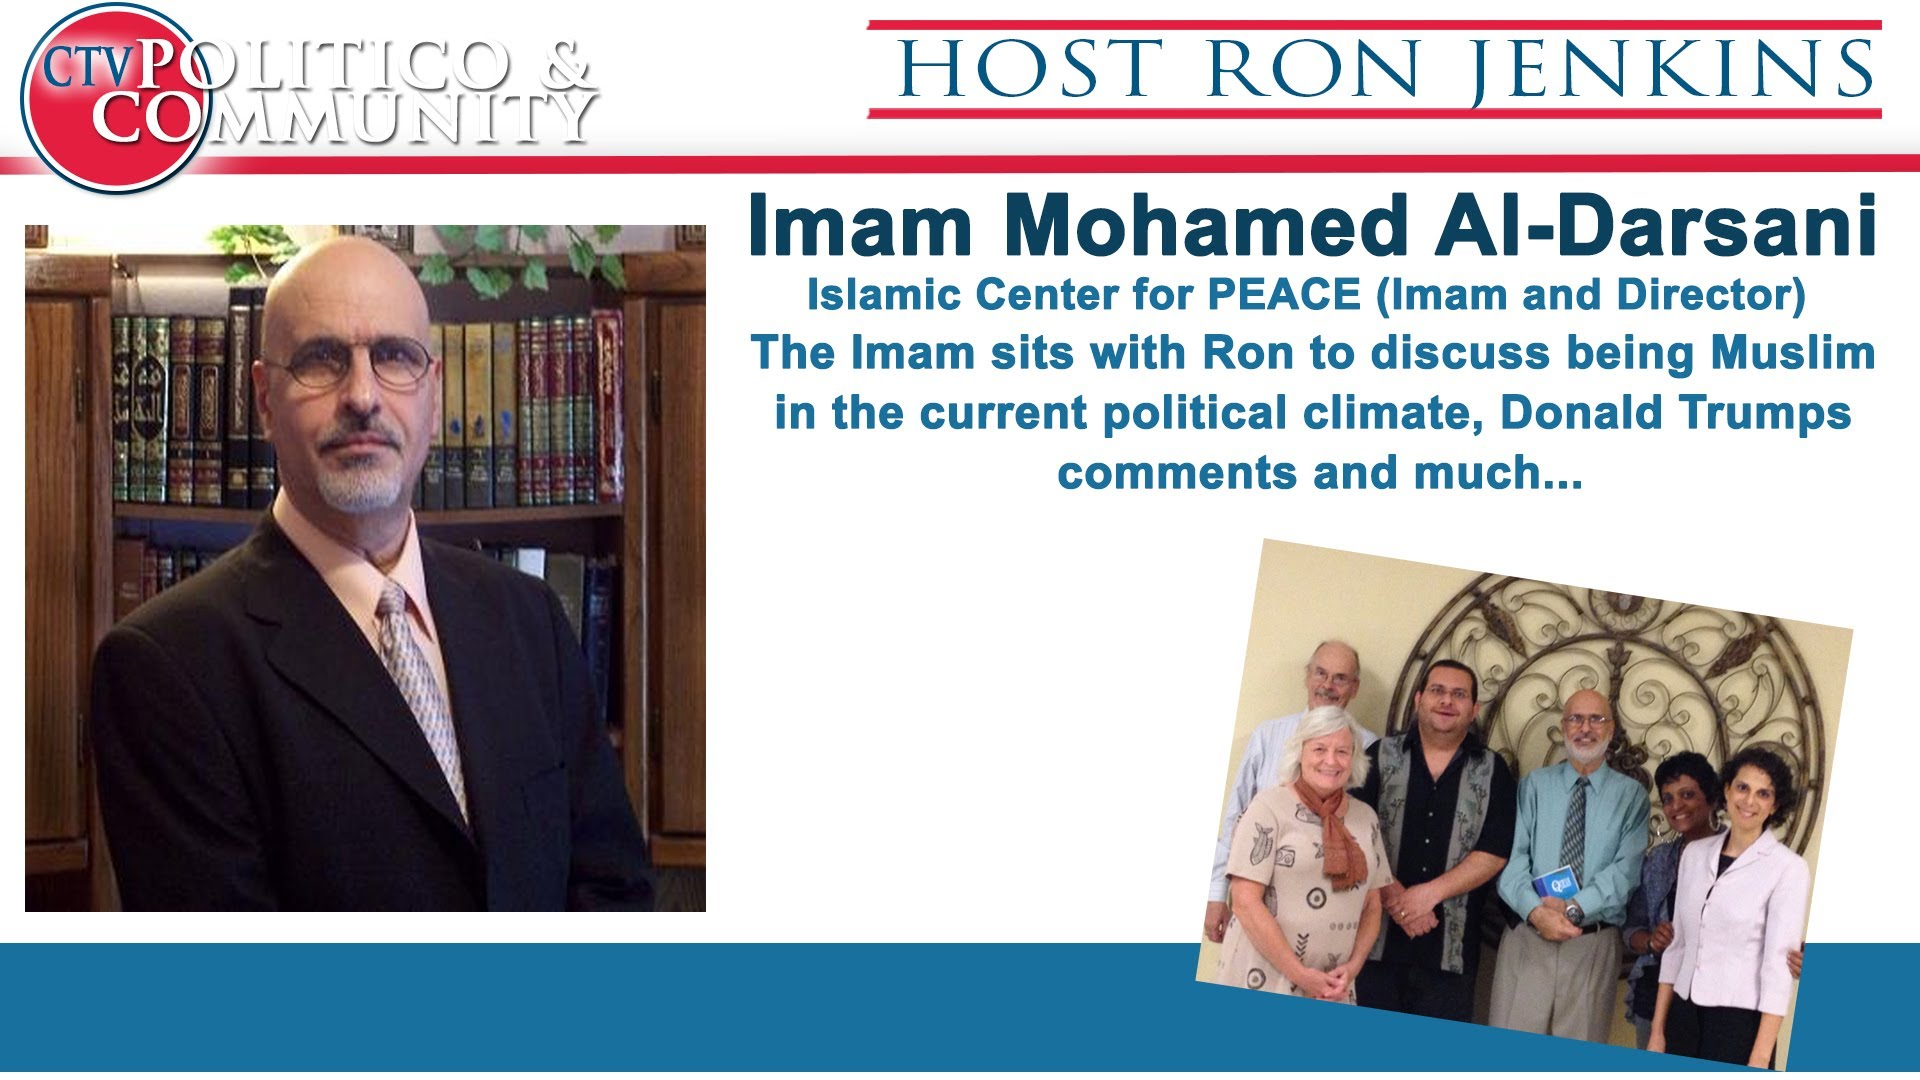 [12-23-2015] CTV Politico & Community with Studio Guest Imam Mohamed Al-Darsani